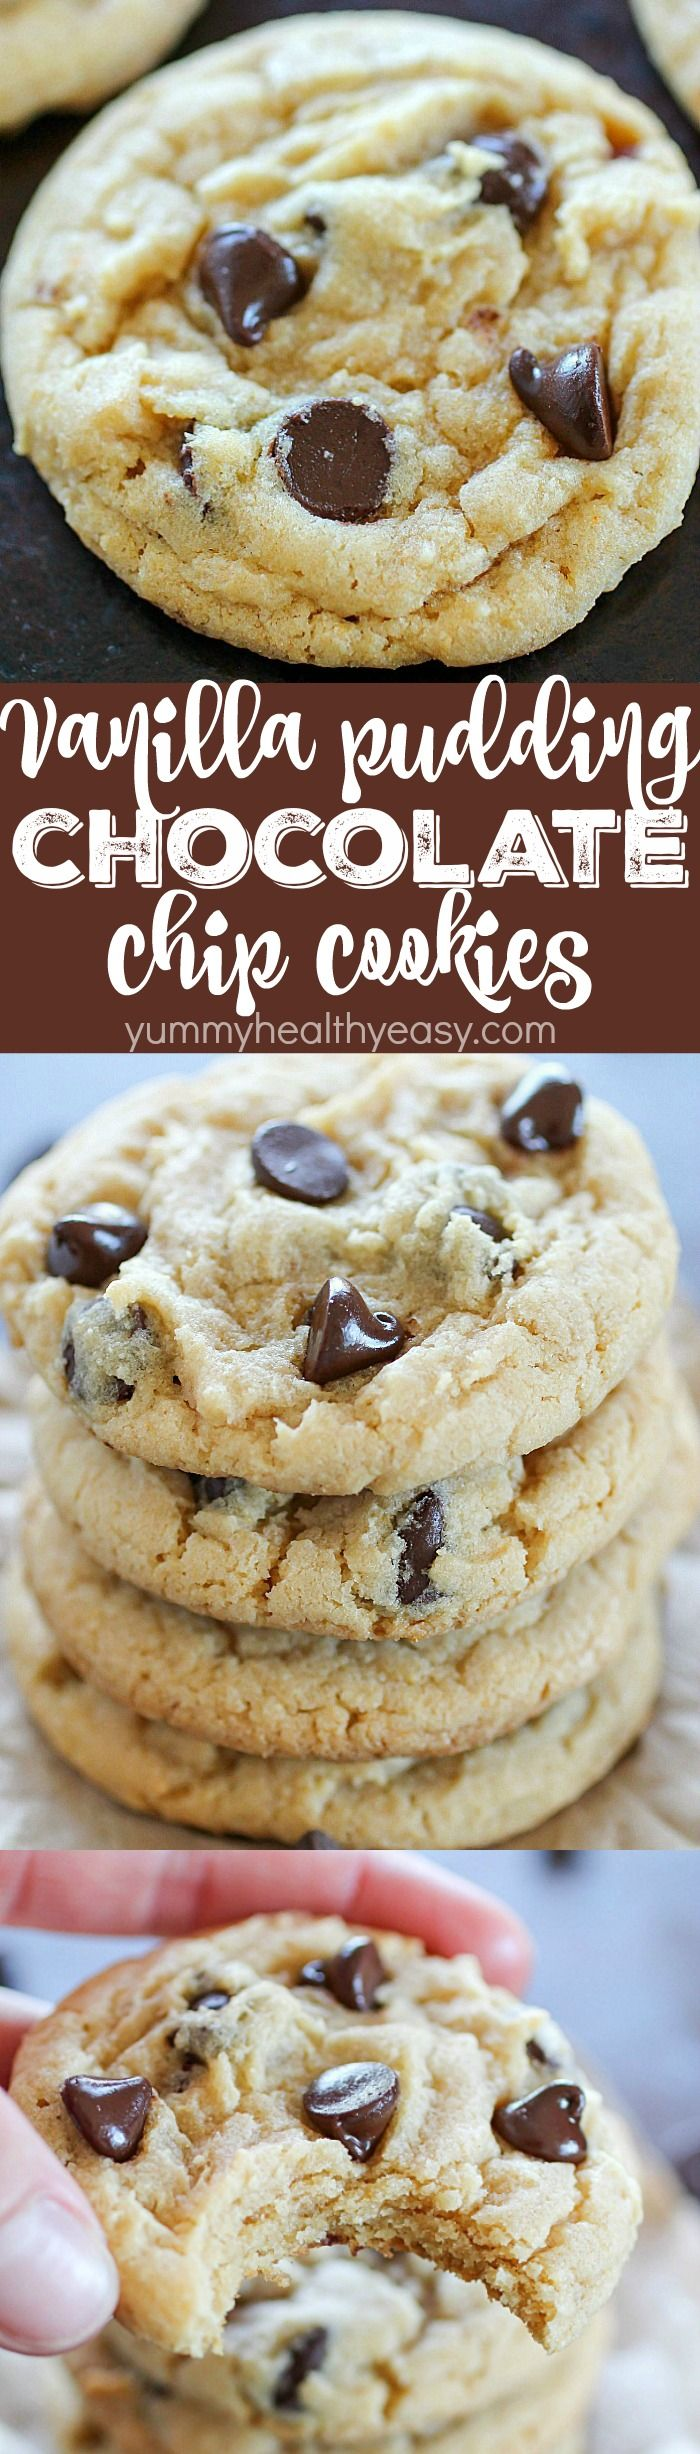 These Vanilla Pudding Chocolate Chip Cookies have vanilla pudding mixed inside the dough to give them a little flavor boost! They're soft &…